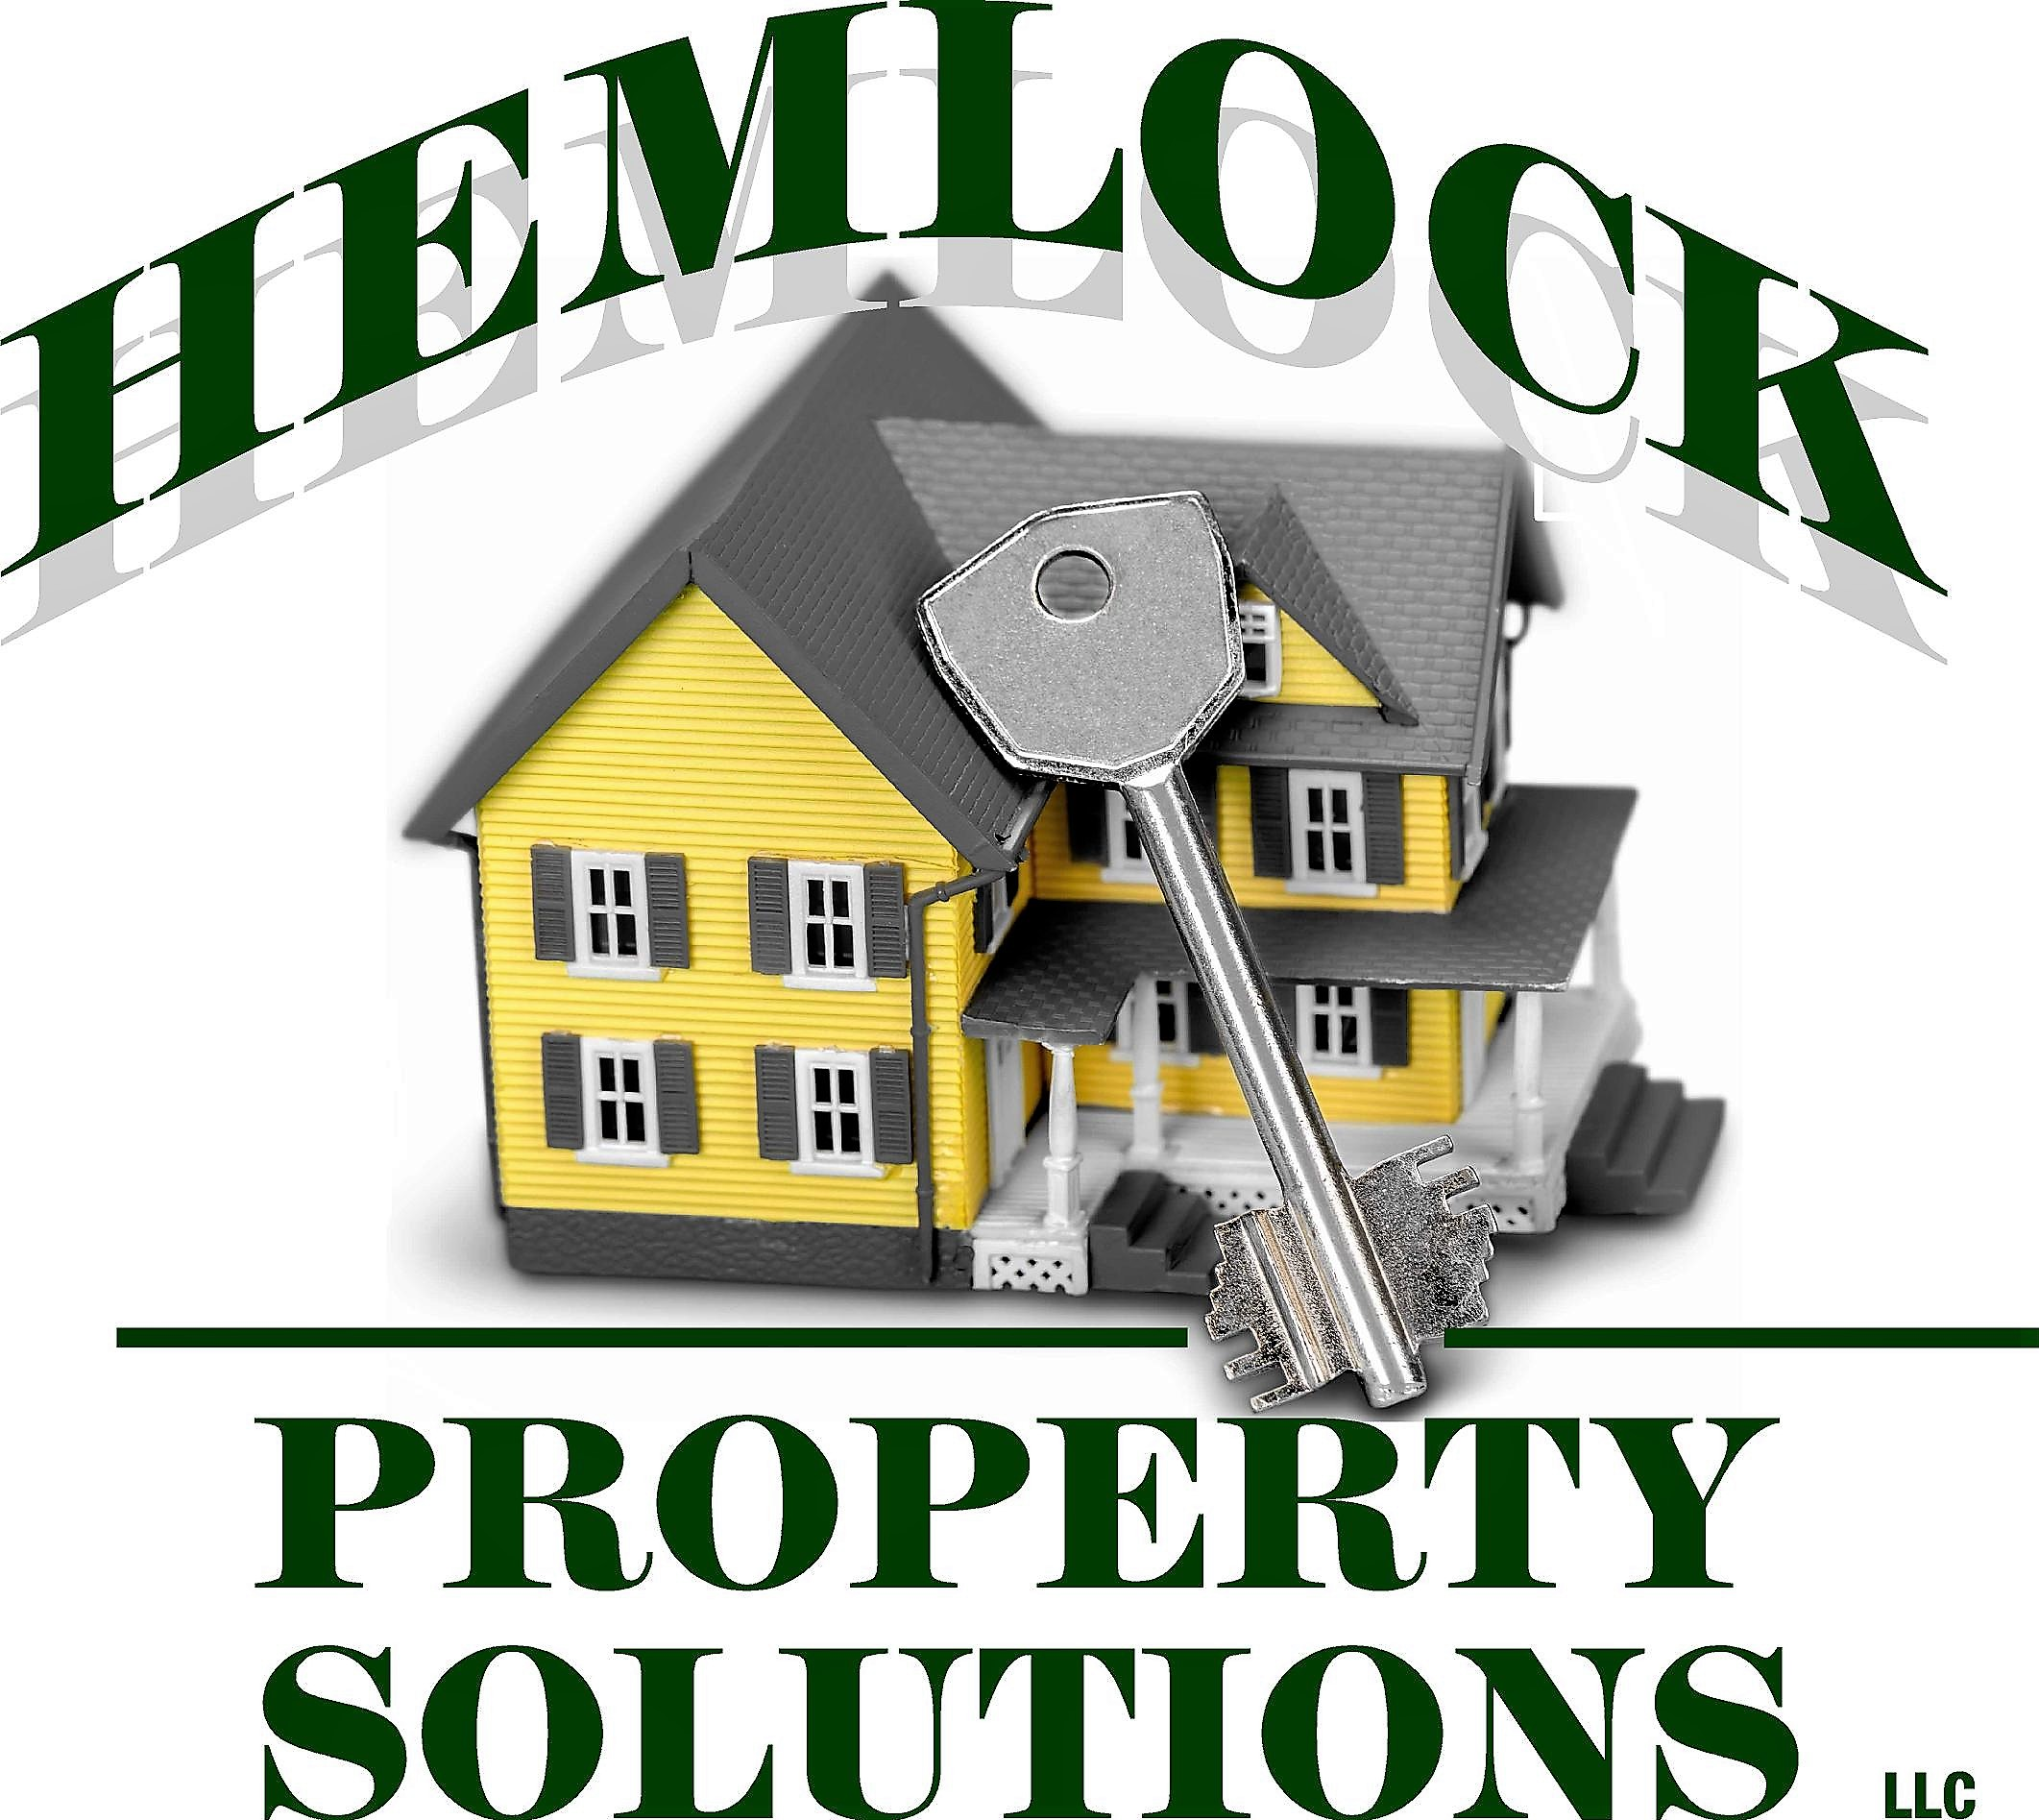 Hemlock Property Solutions, LLC